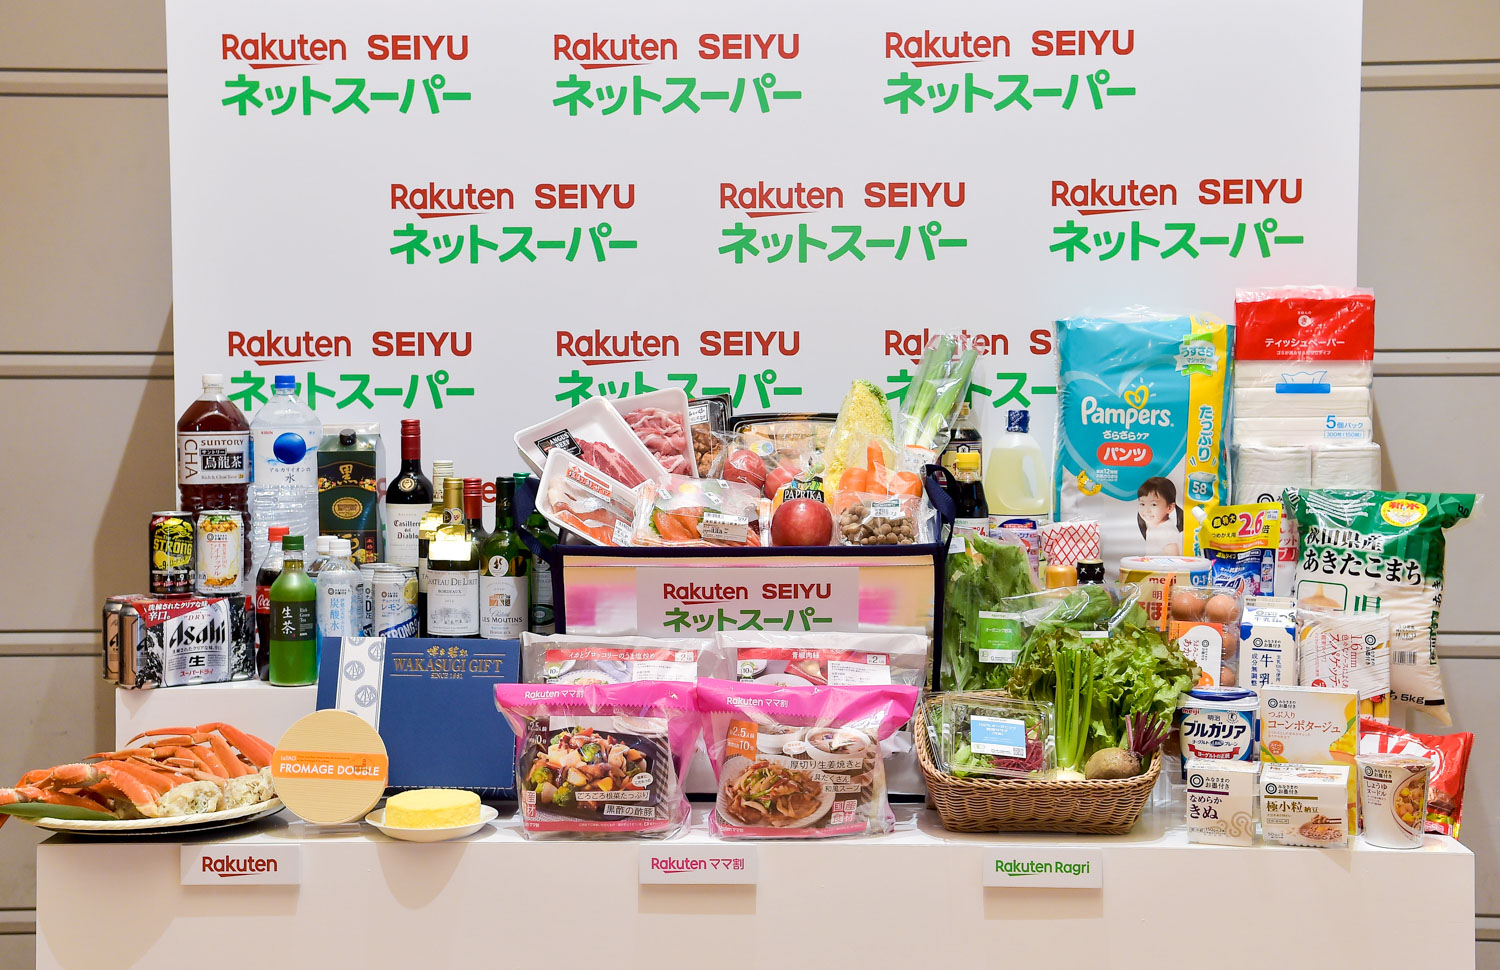 Rakuten and Walmart have come together to launch Rakuten Seiyu Netsuper, an innovative new online grocery delivery service for Japan.